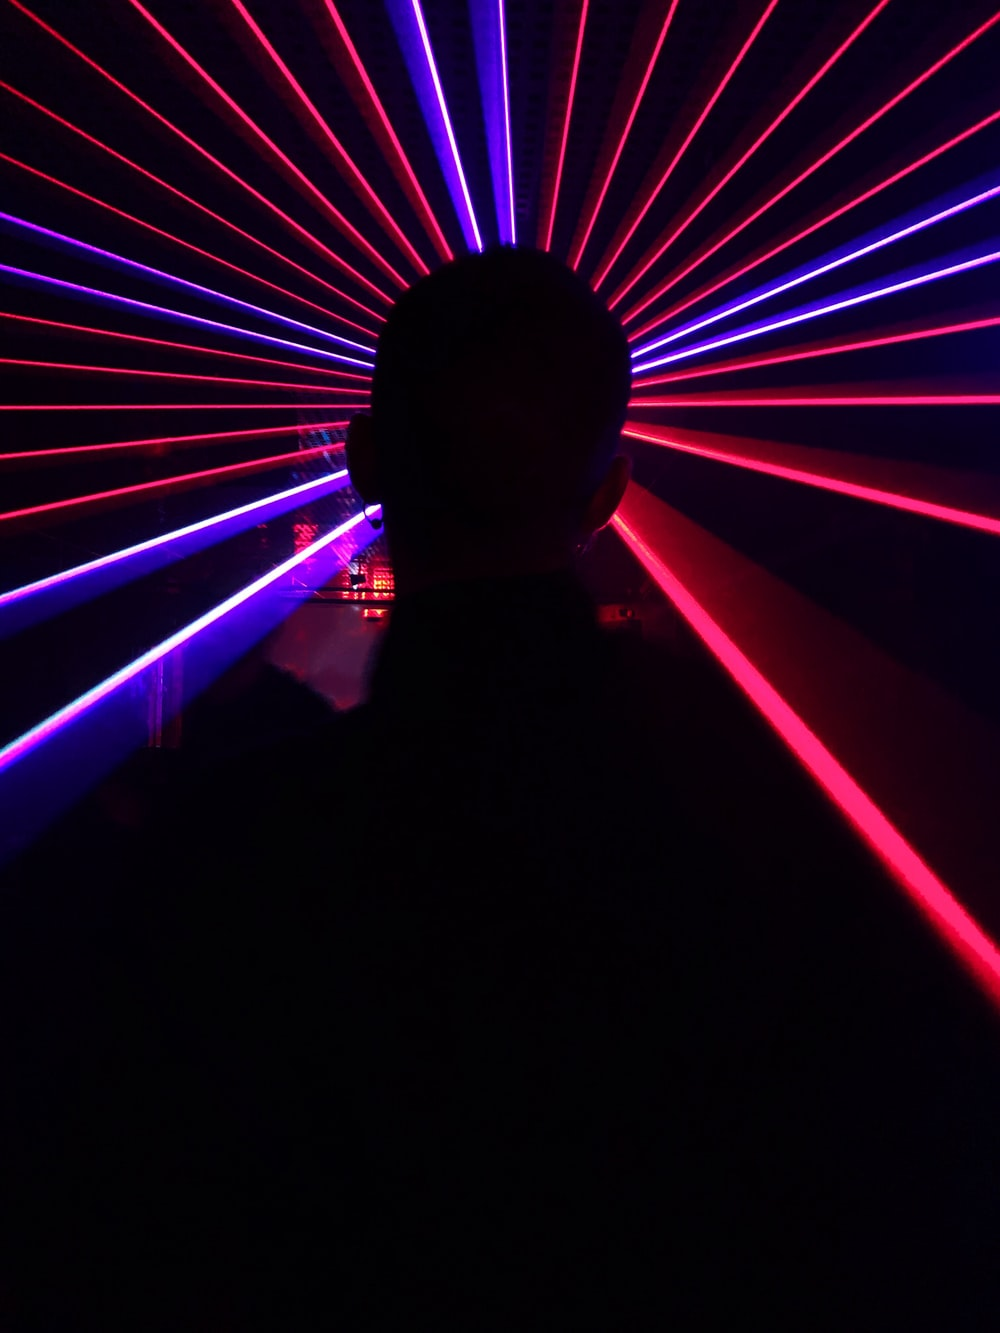 silhouette of people showing red LED lights